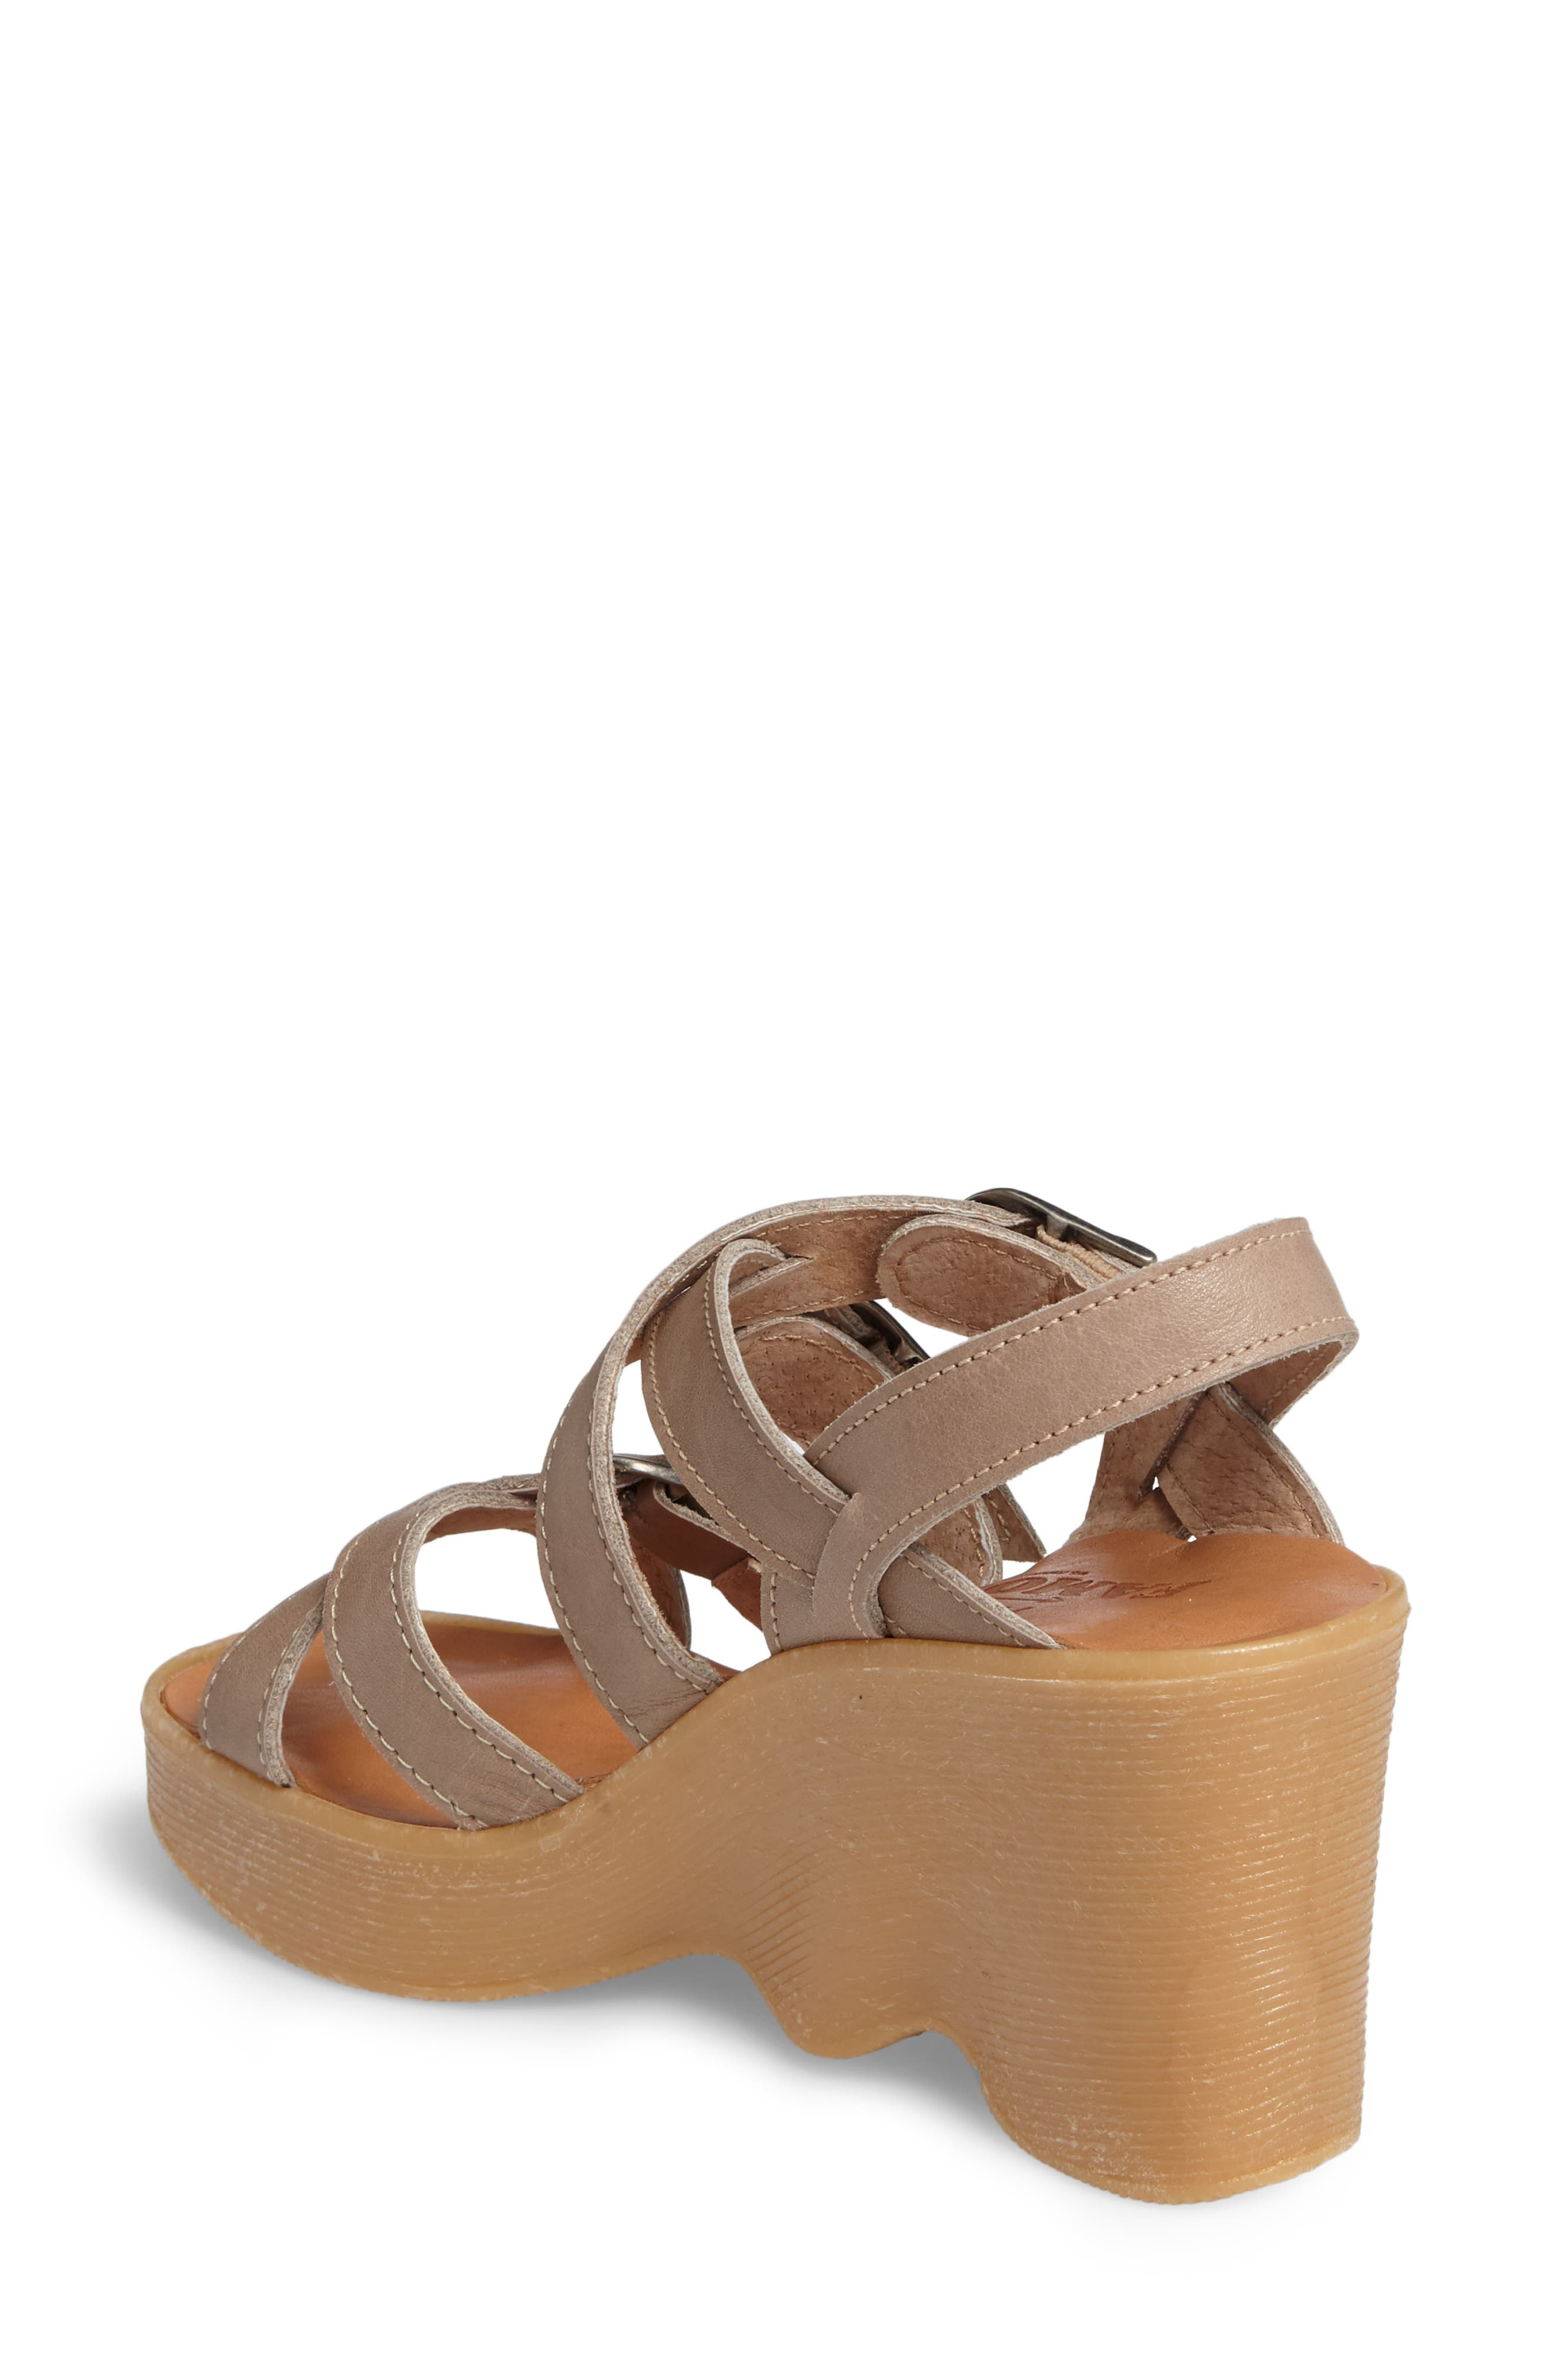 Buckle Up Wedge Sandal,                             Alternate thumbnail 2, color,                             SAND LEATHER